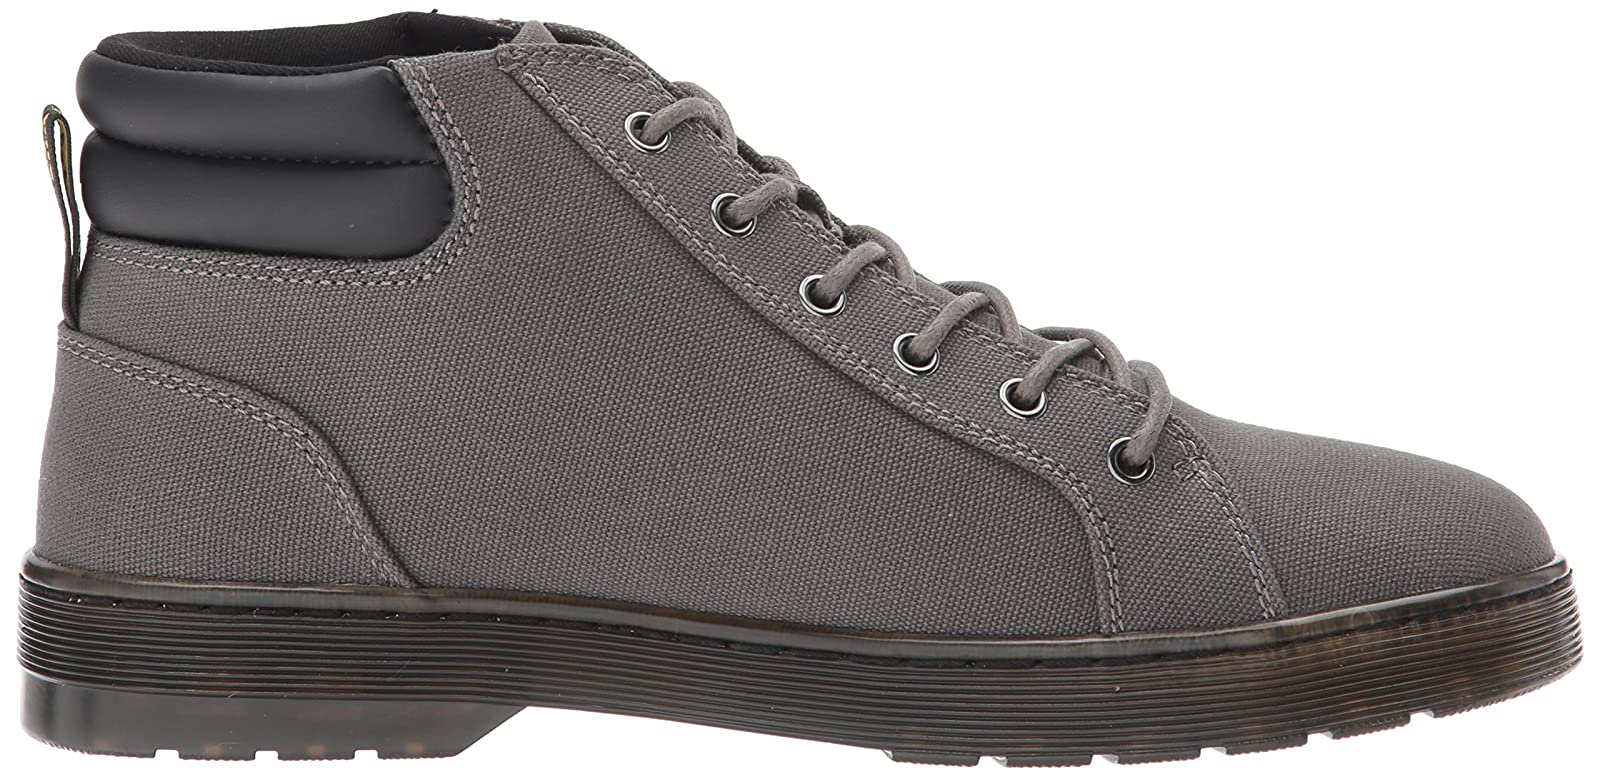 Dr. Martens Men's Plaza Gunmetal Fashion Boot R22864029 - 7